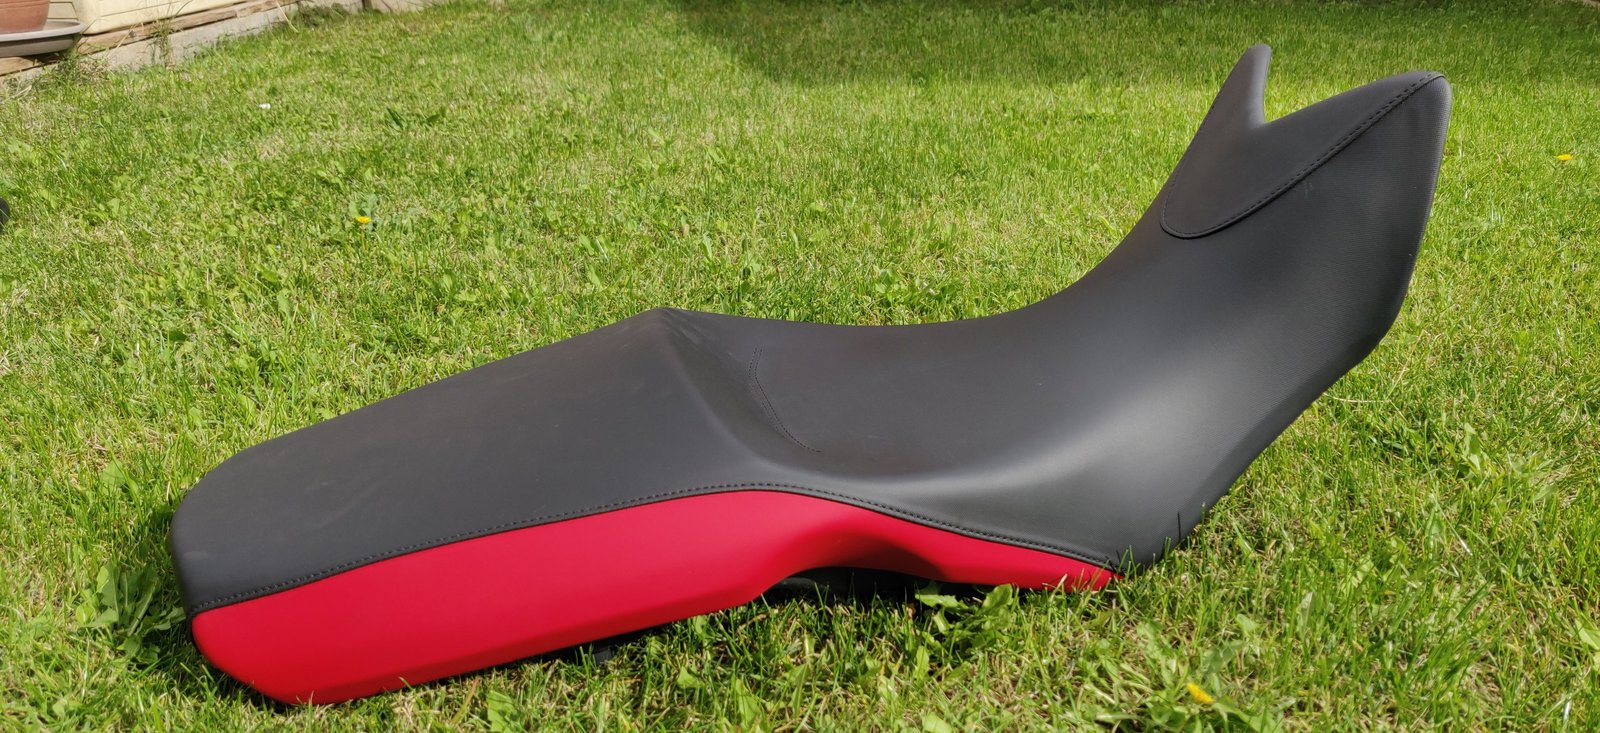 [VENDS] selle F800 GS rouge 201010120032784904